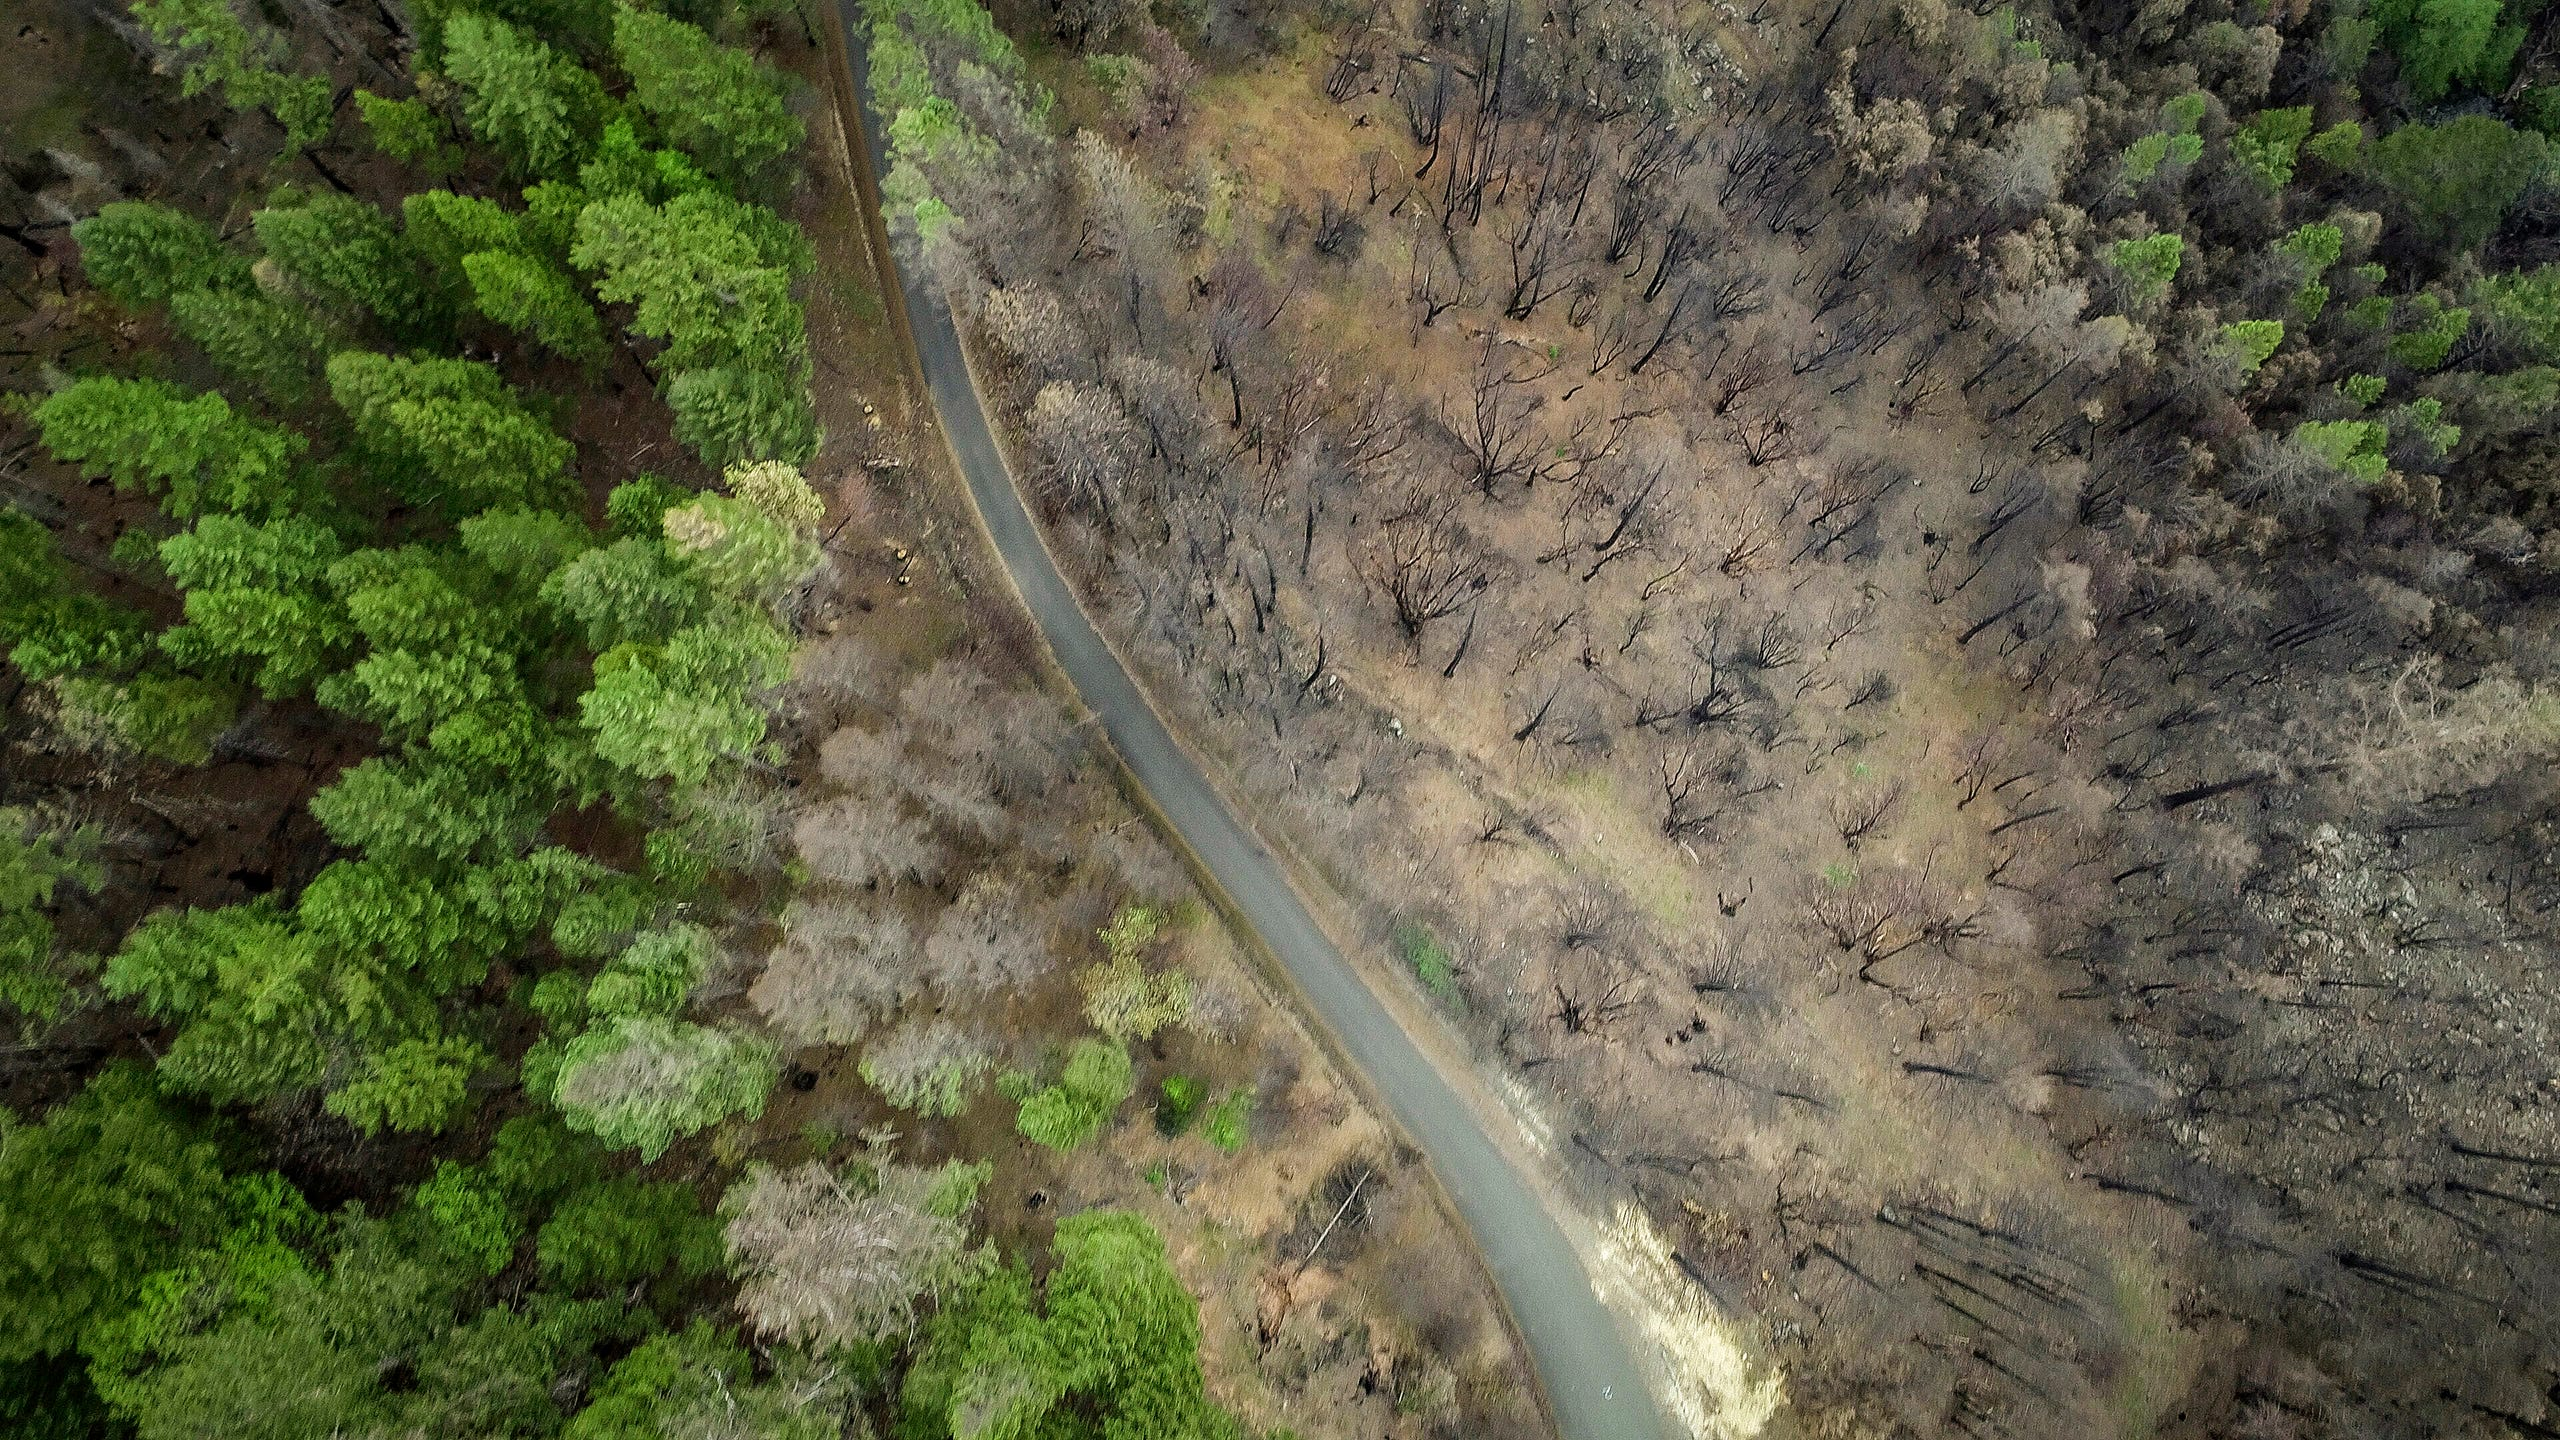 Burn scars from the Taylor Creek Fire from 2018 can be seen along Taylor Creek Road near Merlin. The fire burned thousands of acres and along with other fires in the area caused large revenue losses for businesses along the popular Rogue River tourist area. Nearby Merlin tops a list of areas most at risk of a devastating wildlife like those in Redding and Paradise California in 2018.